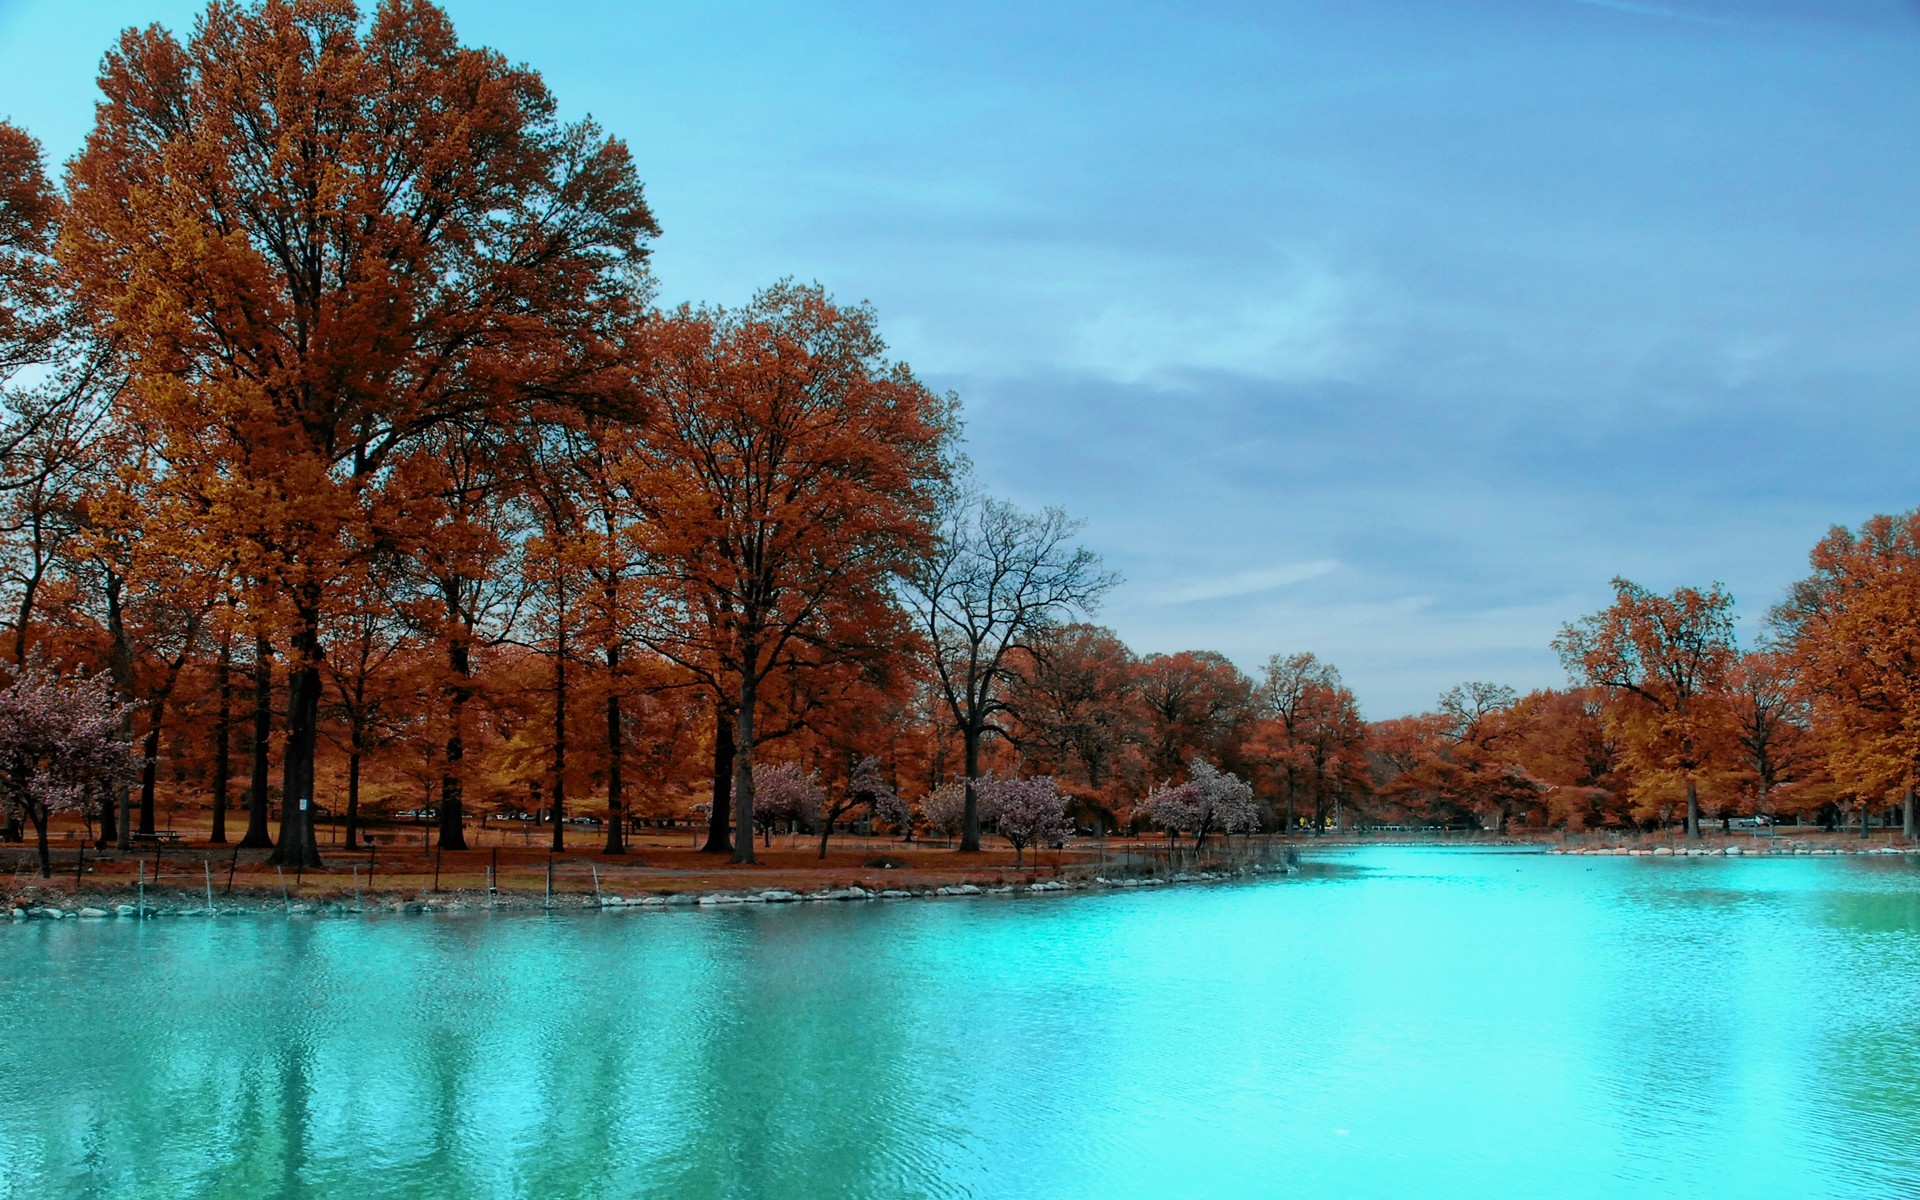 46972 download wallpaper Landscape, Nature, Trees, Lakes screensavers and pictures for free